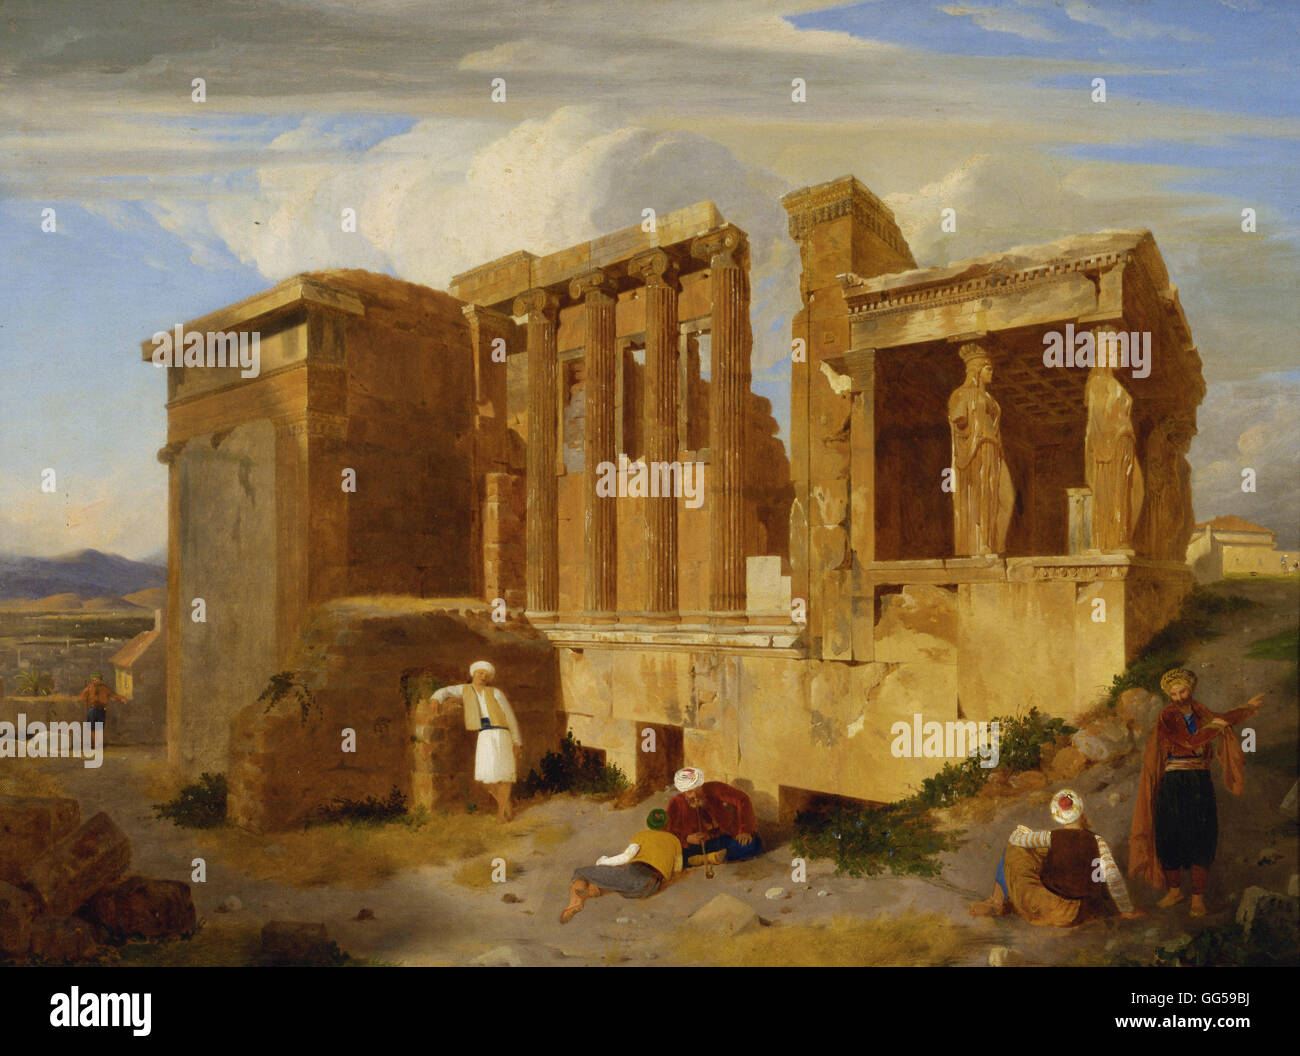 Charles Lock Eastlake - The Erechtheum, Athens, with Figures in the Foreground - Stock Image